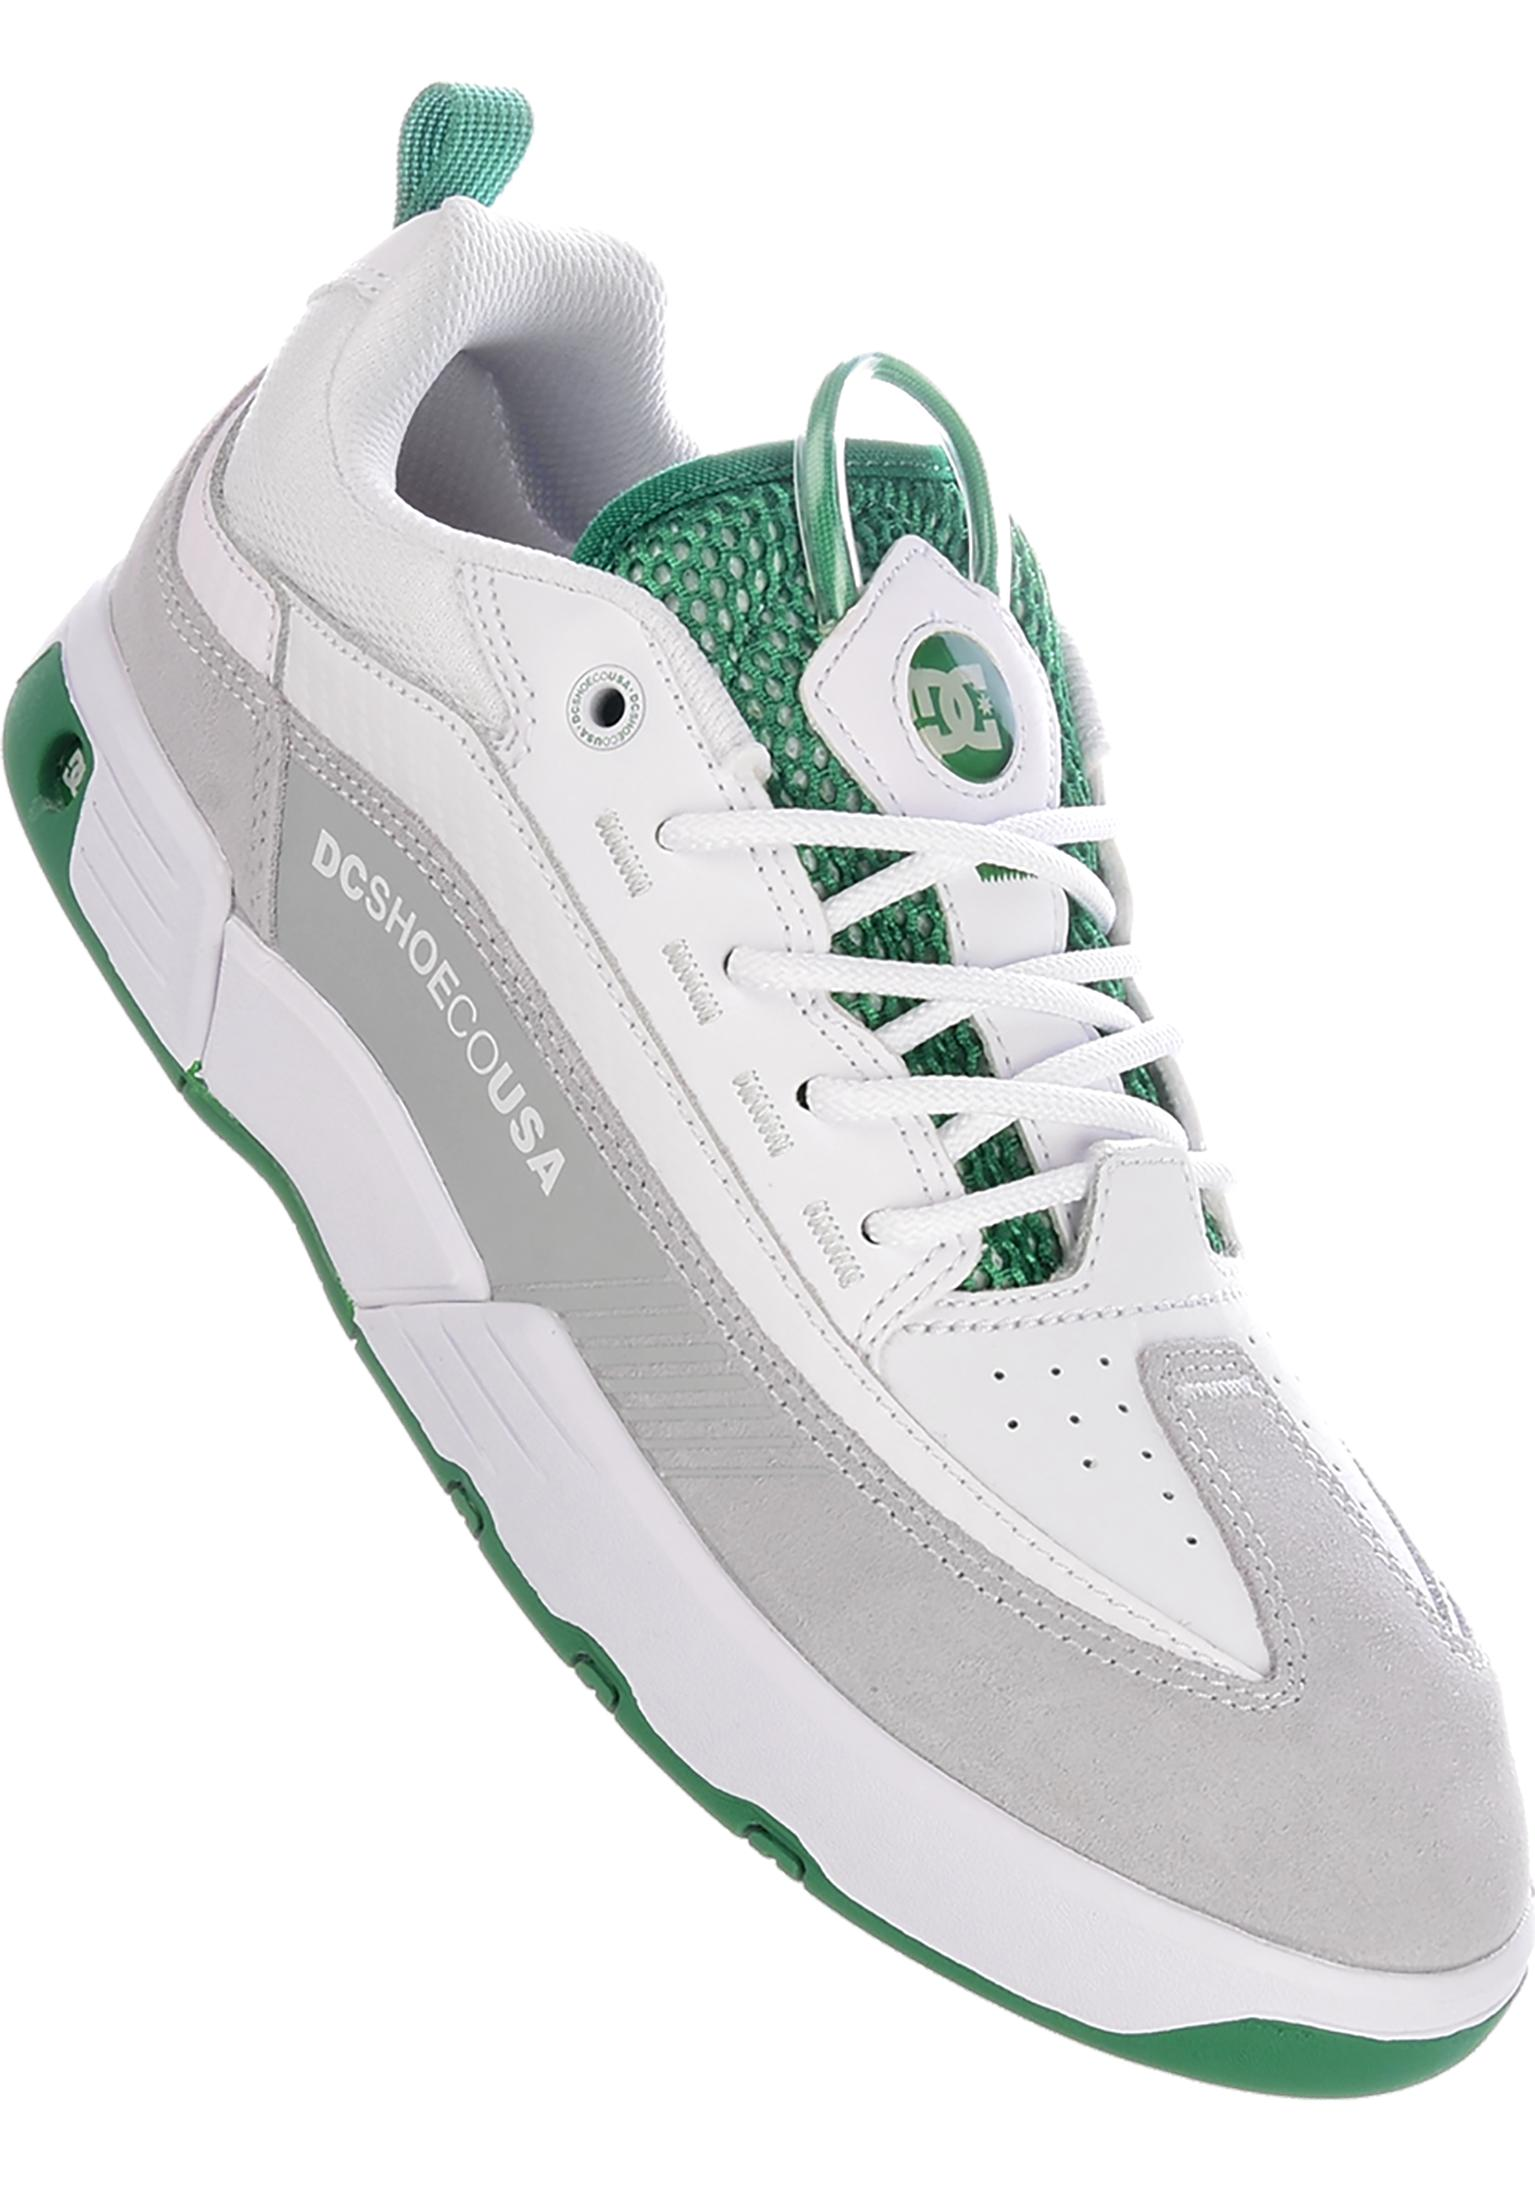 Legacy 98 Slim S DC Shoes All Shoes in